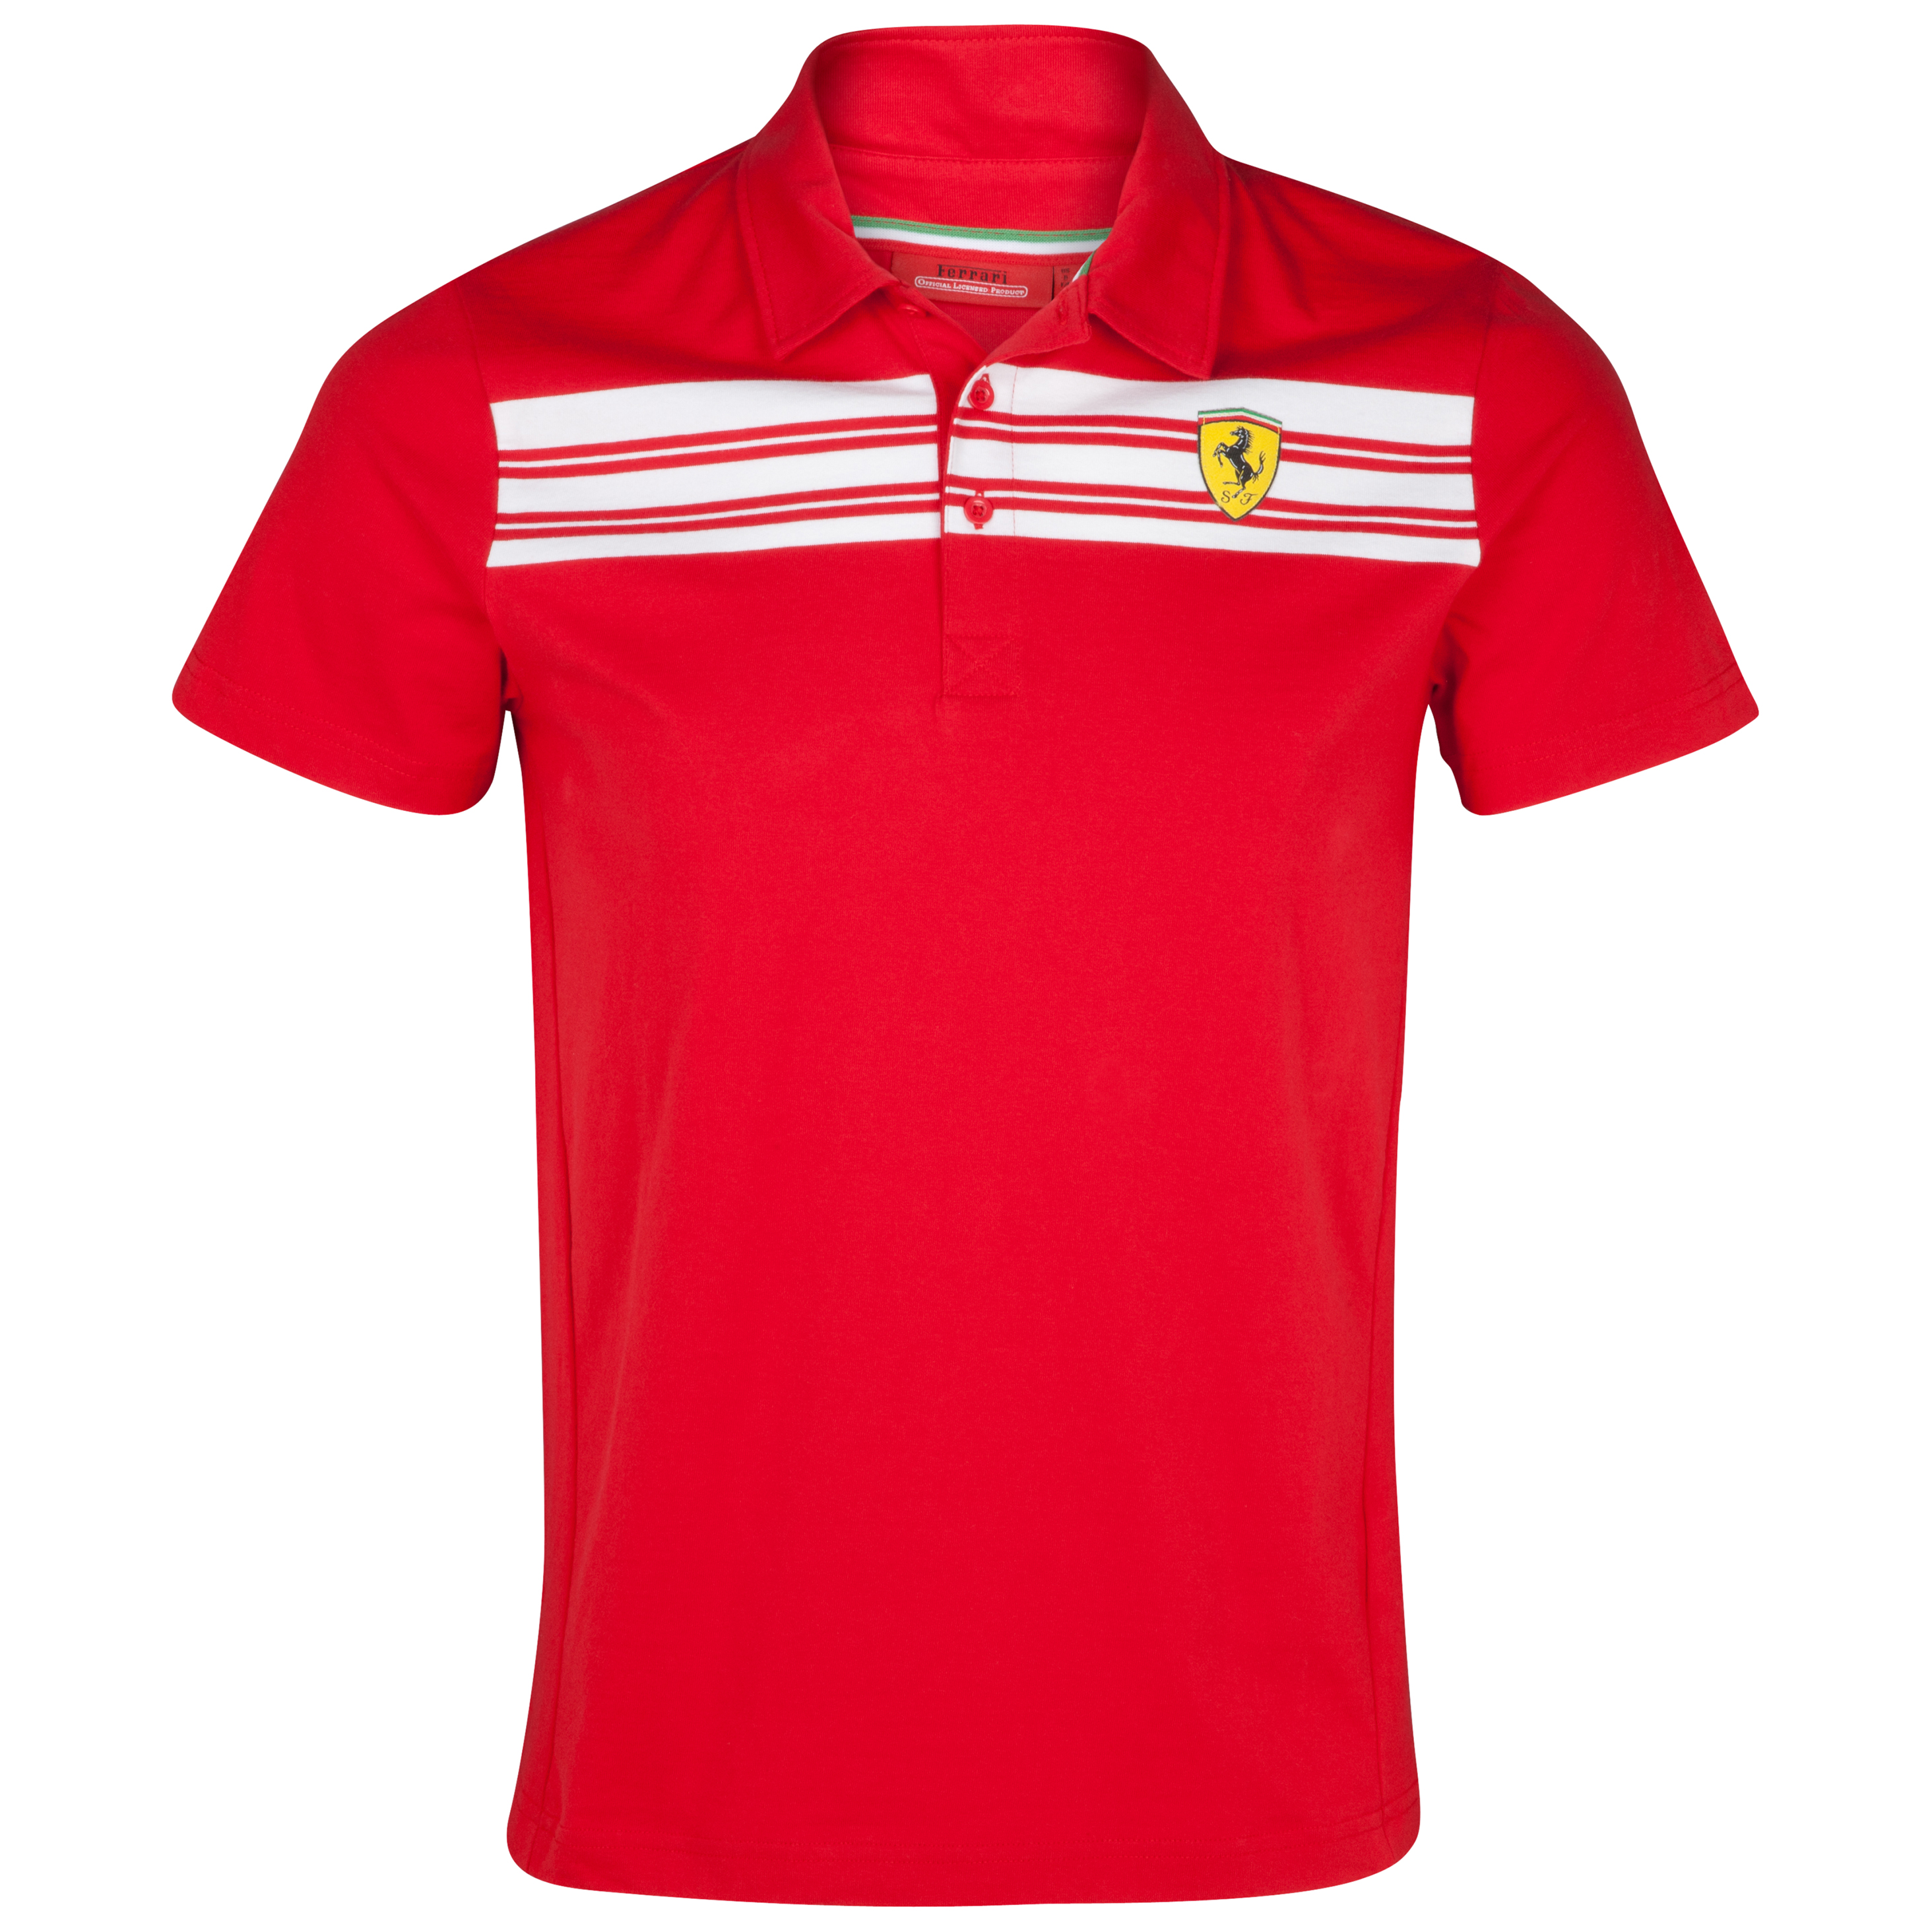 Scuderia Ferrari Striped Polo Shirt - Red